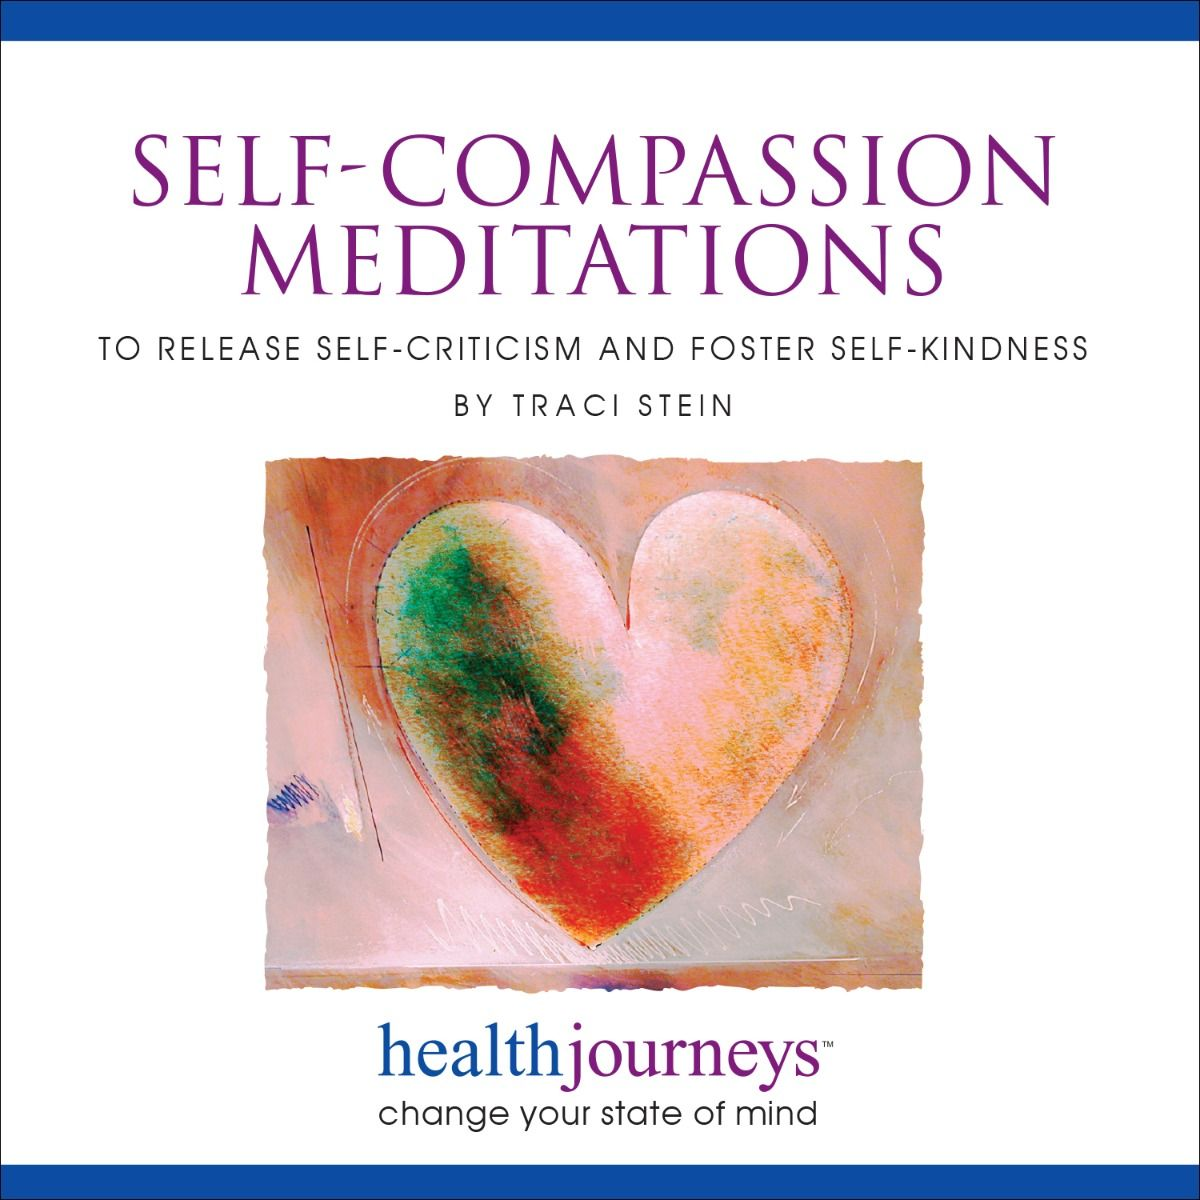 Self-Compassion Meditations To Release Self-Criticism and Foster Self-Kindness